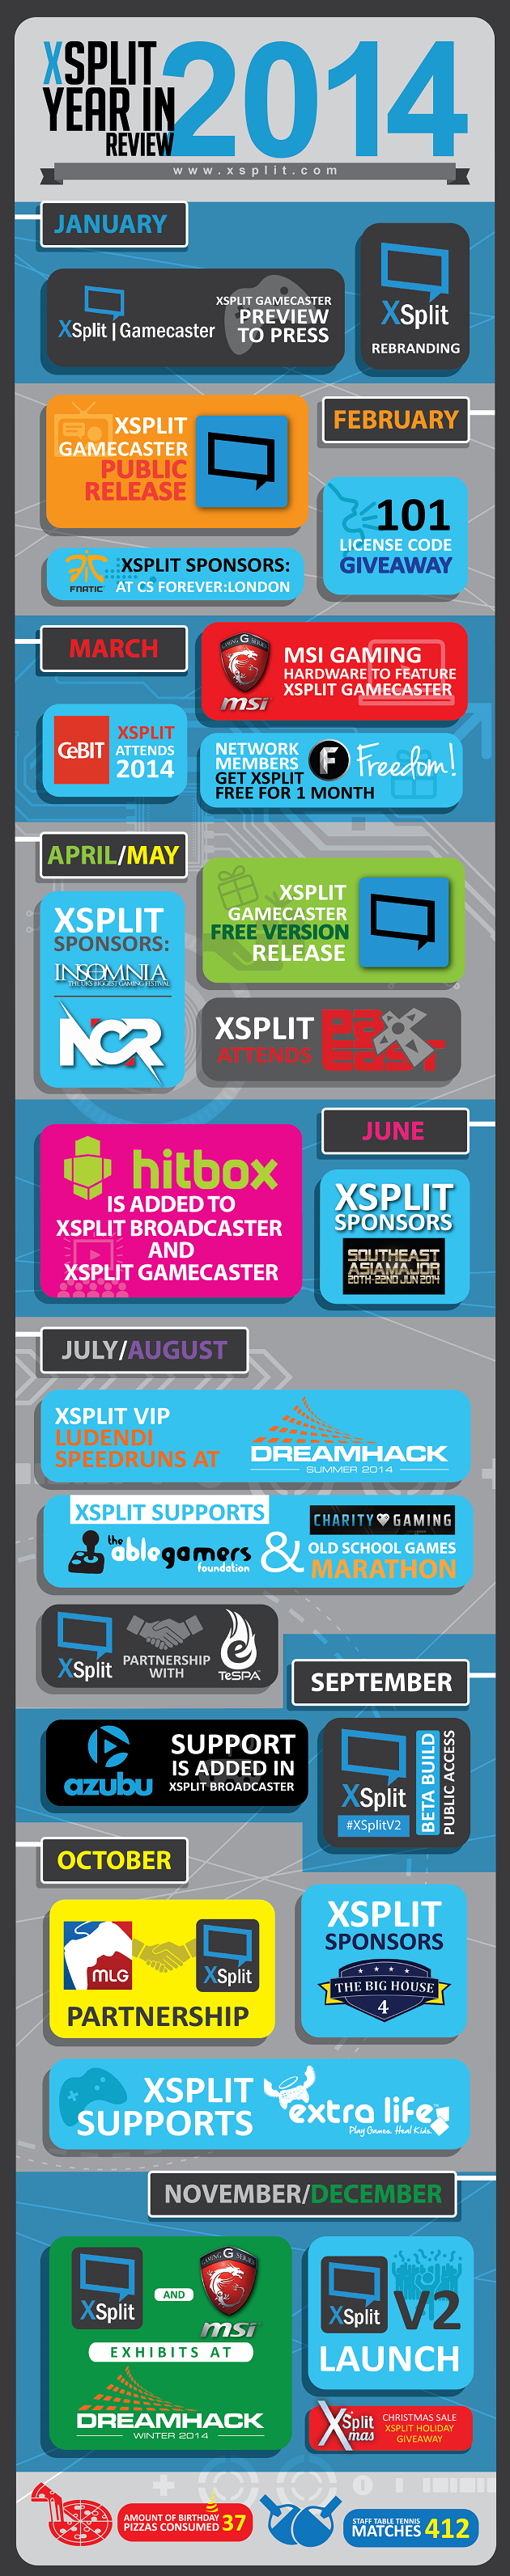 xsplit year in review 2014